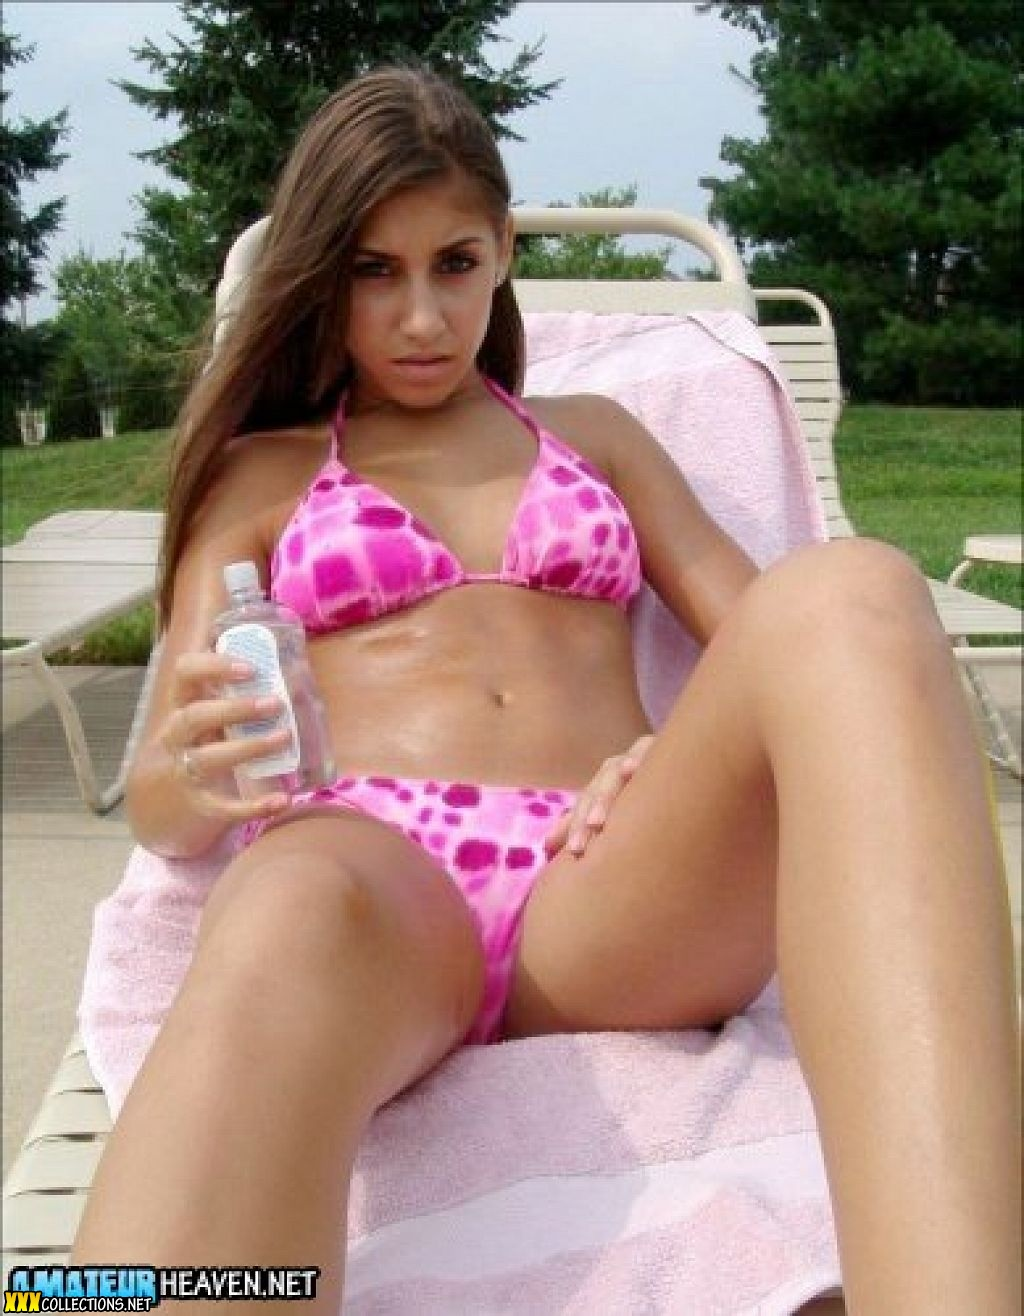 super hot jailbate teens pic